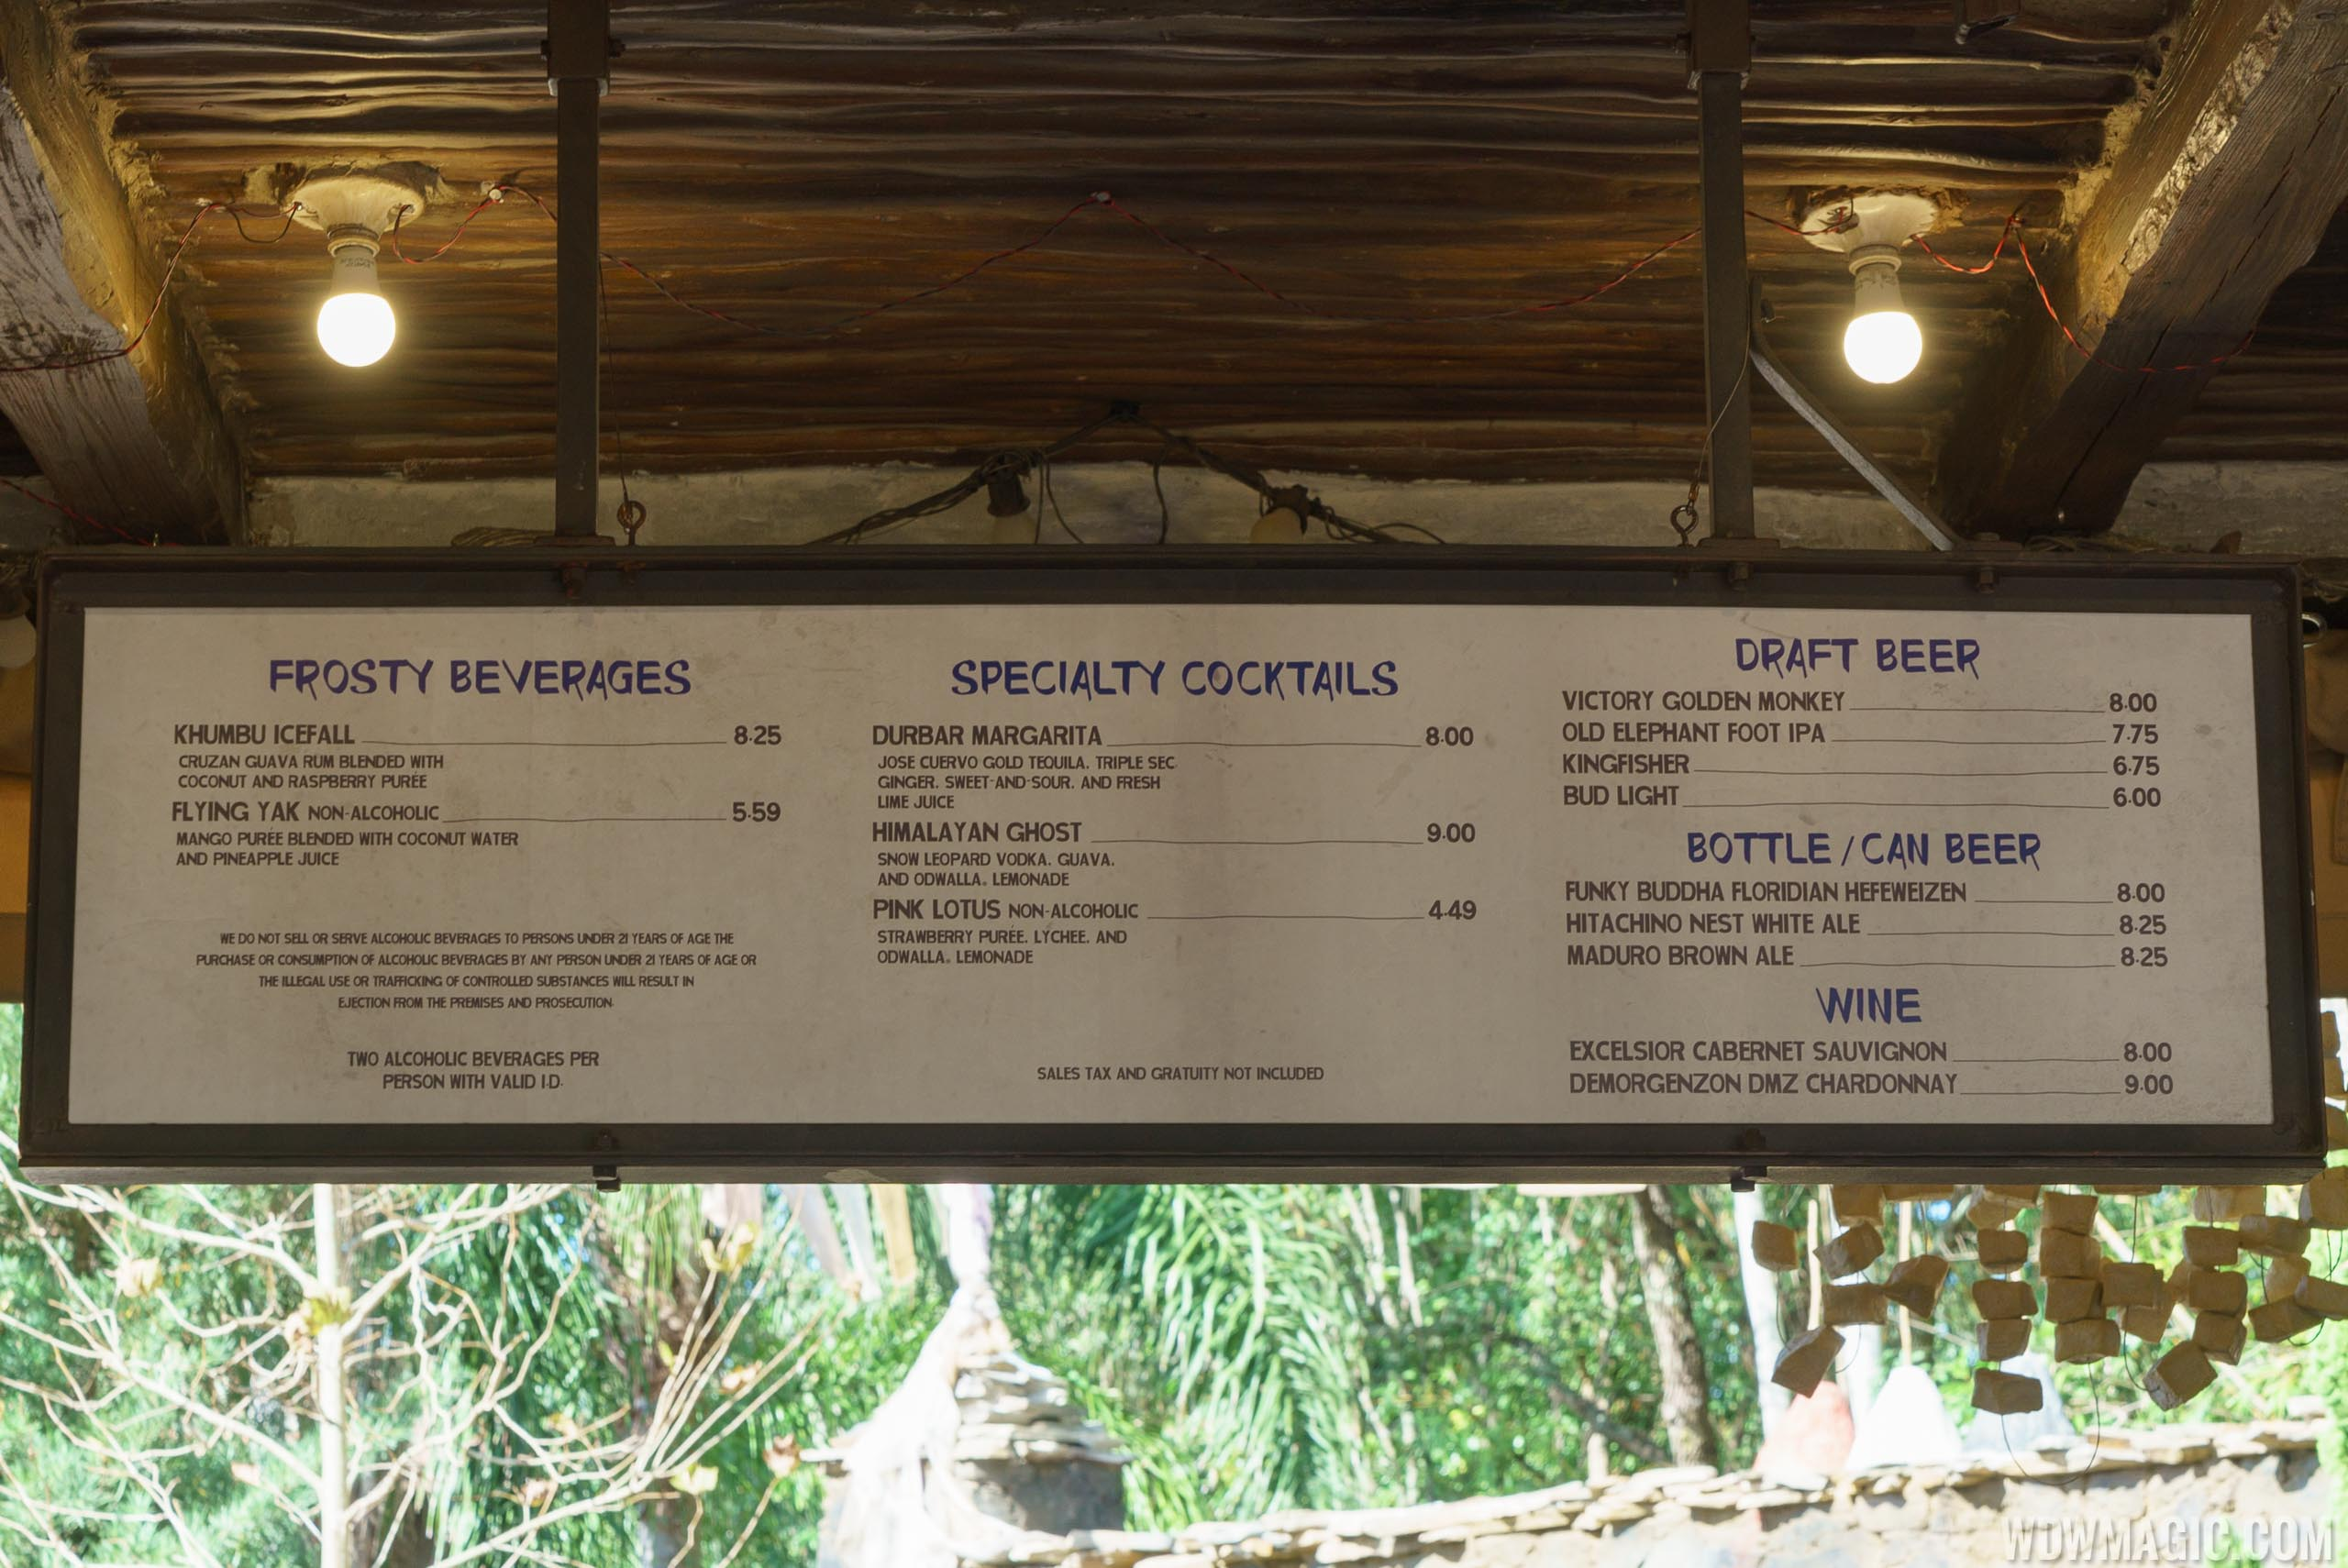 Thirsty River Bar and Trek Snacks alcohol menu